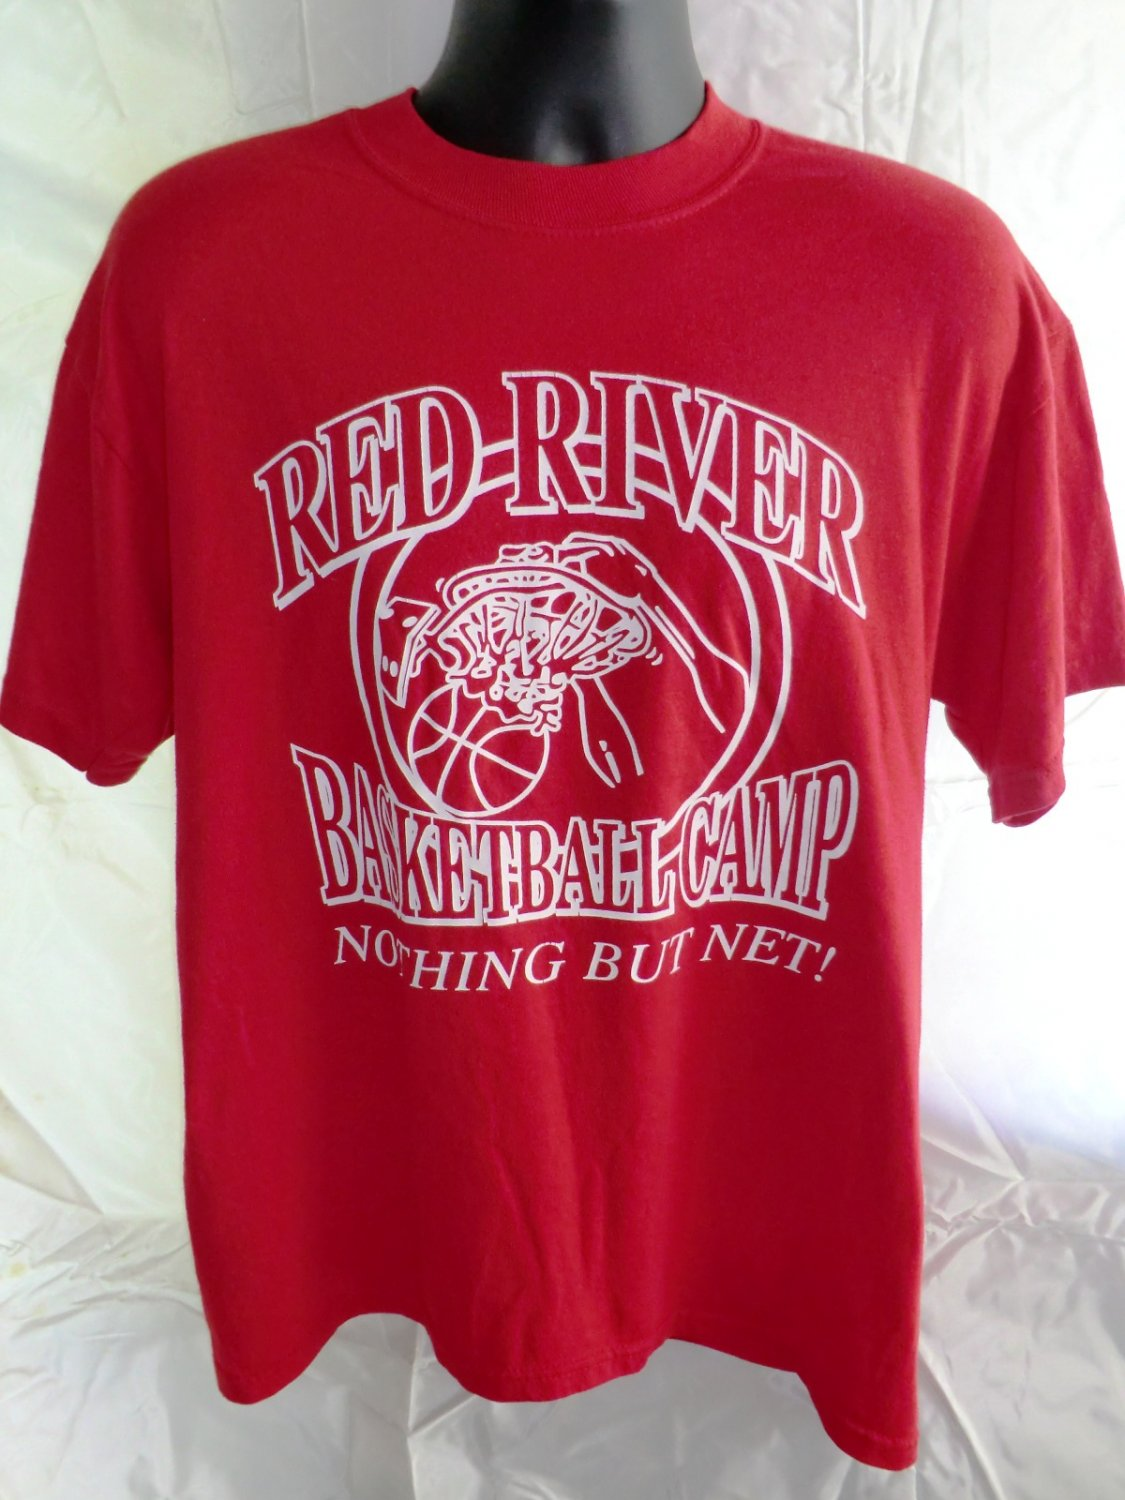 Red River Basketball Camp Nothing But Net Size Large T-Shirt